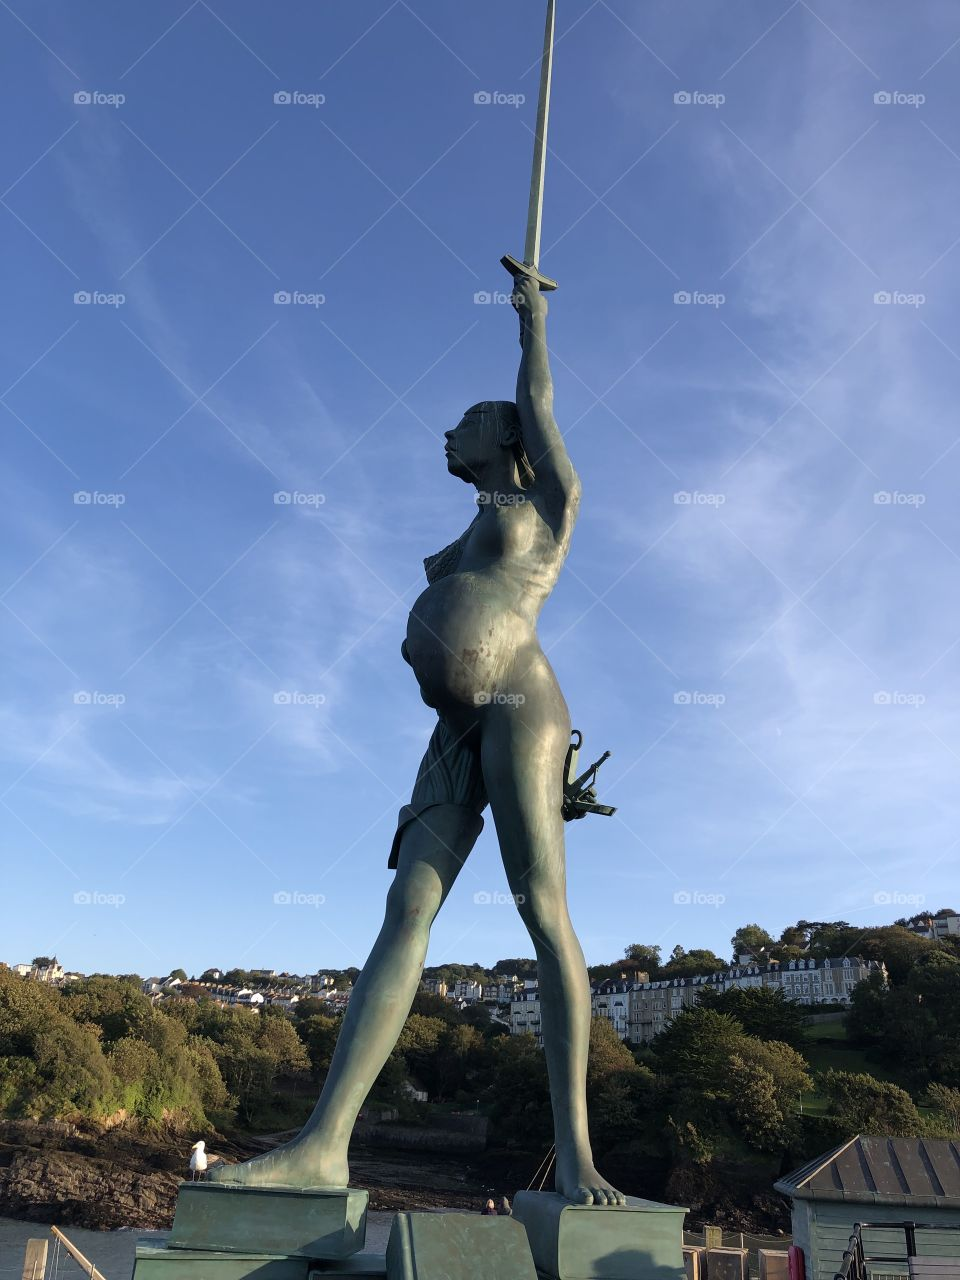 """This is a huge sculpture created by the famous artist Damien Hirst, it represents """"truth and hope"""" and can be located in Ilfracombe in Devon, UK."""